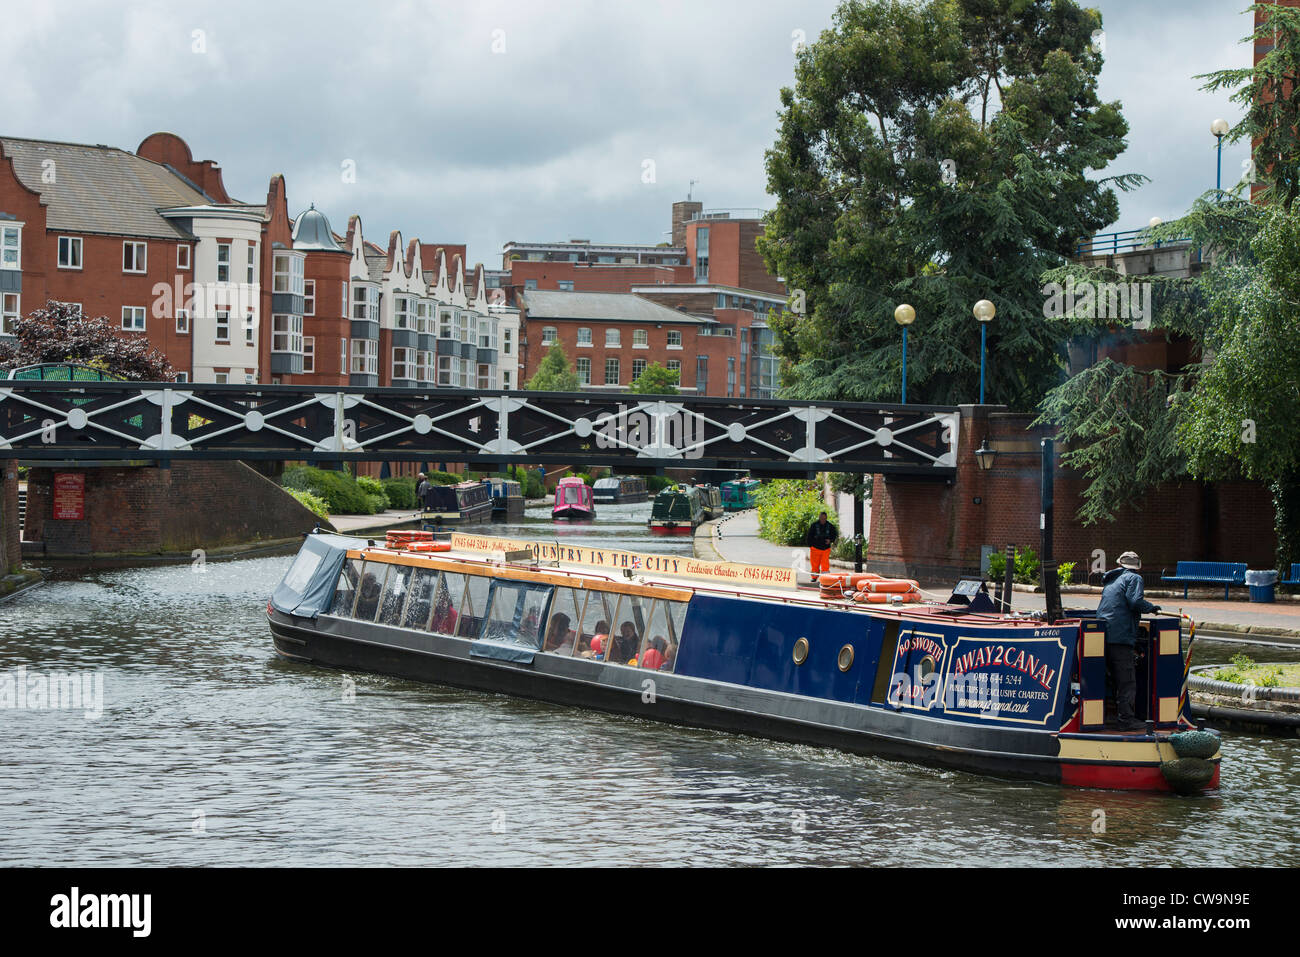 A barge on the canal in near to Brindleyplace - Stock Image